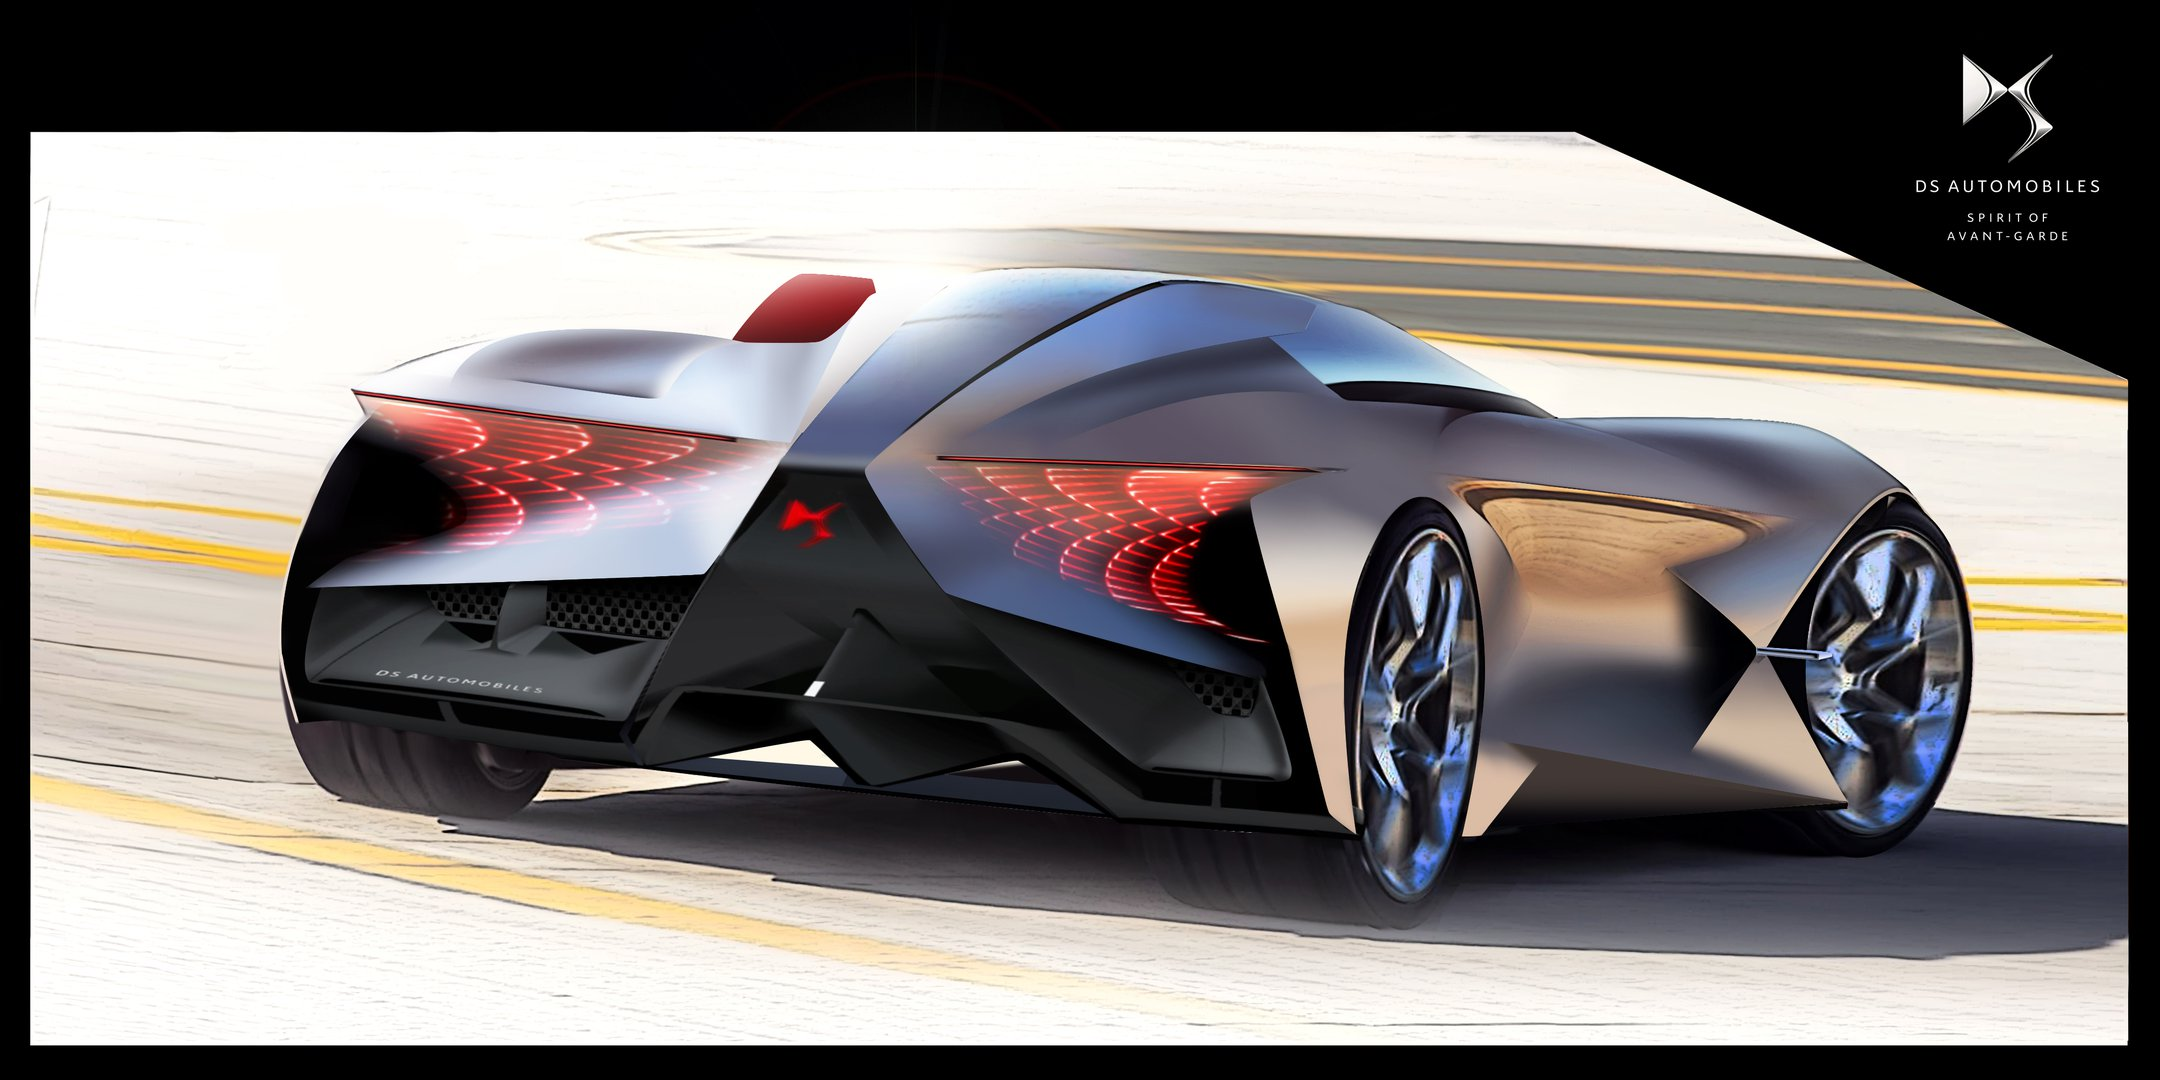 ds automobiles presented sports car for the far future driving